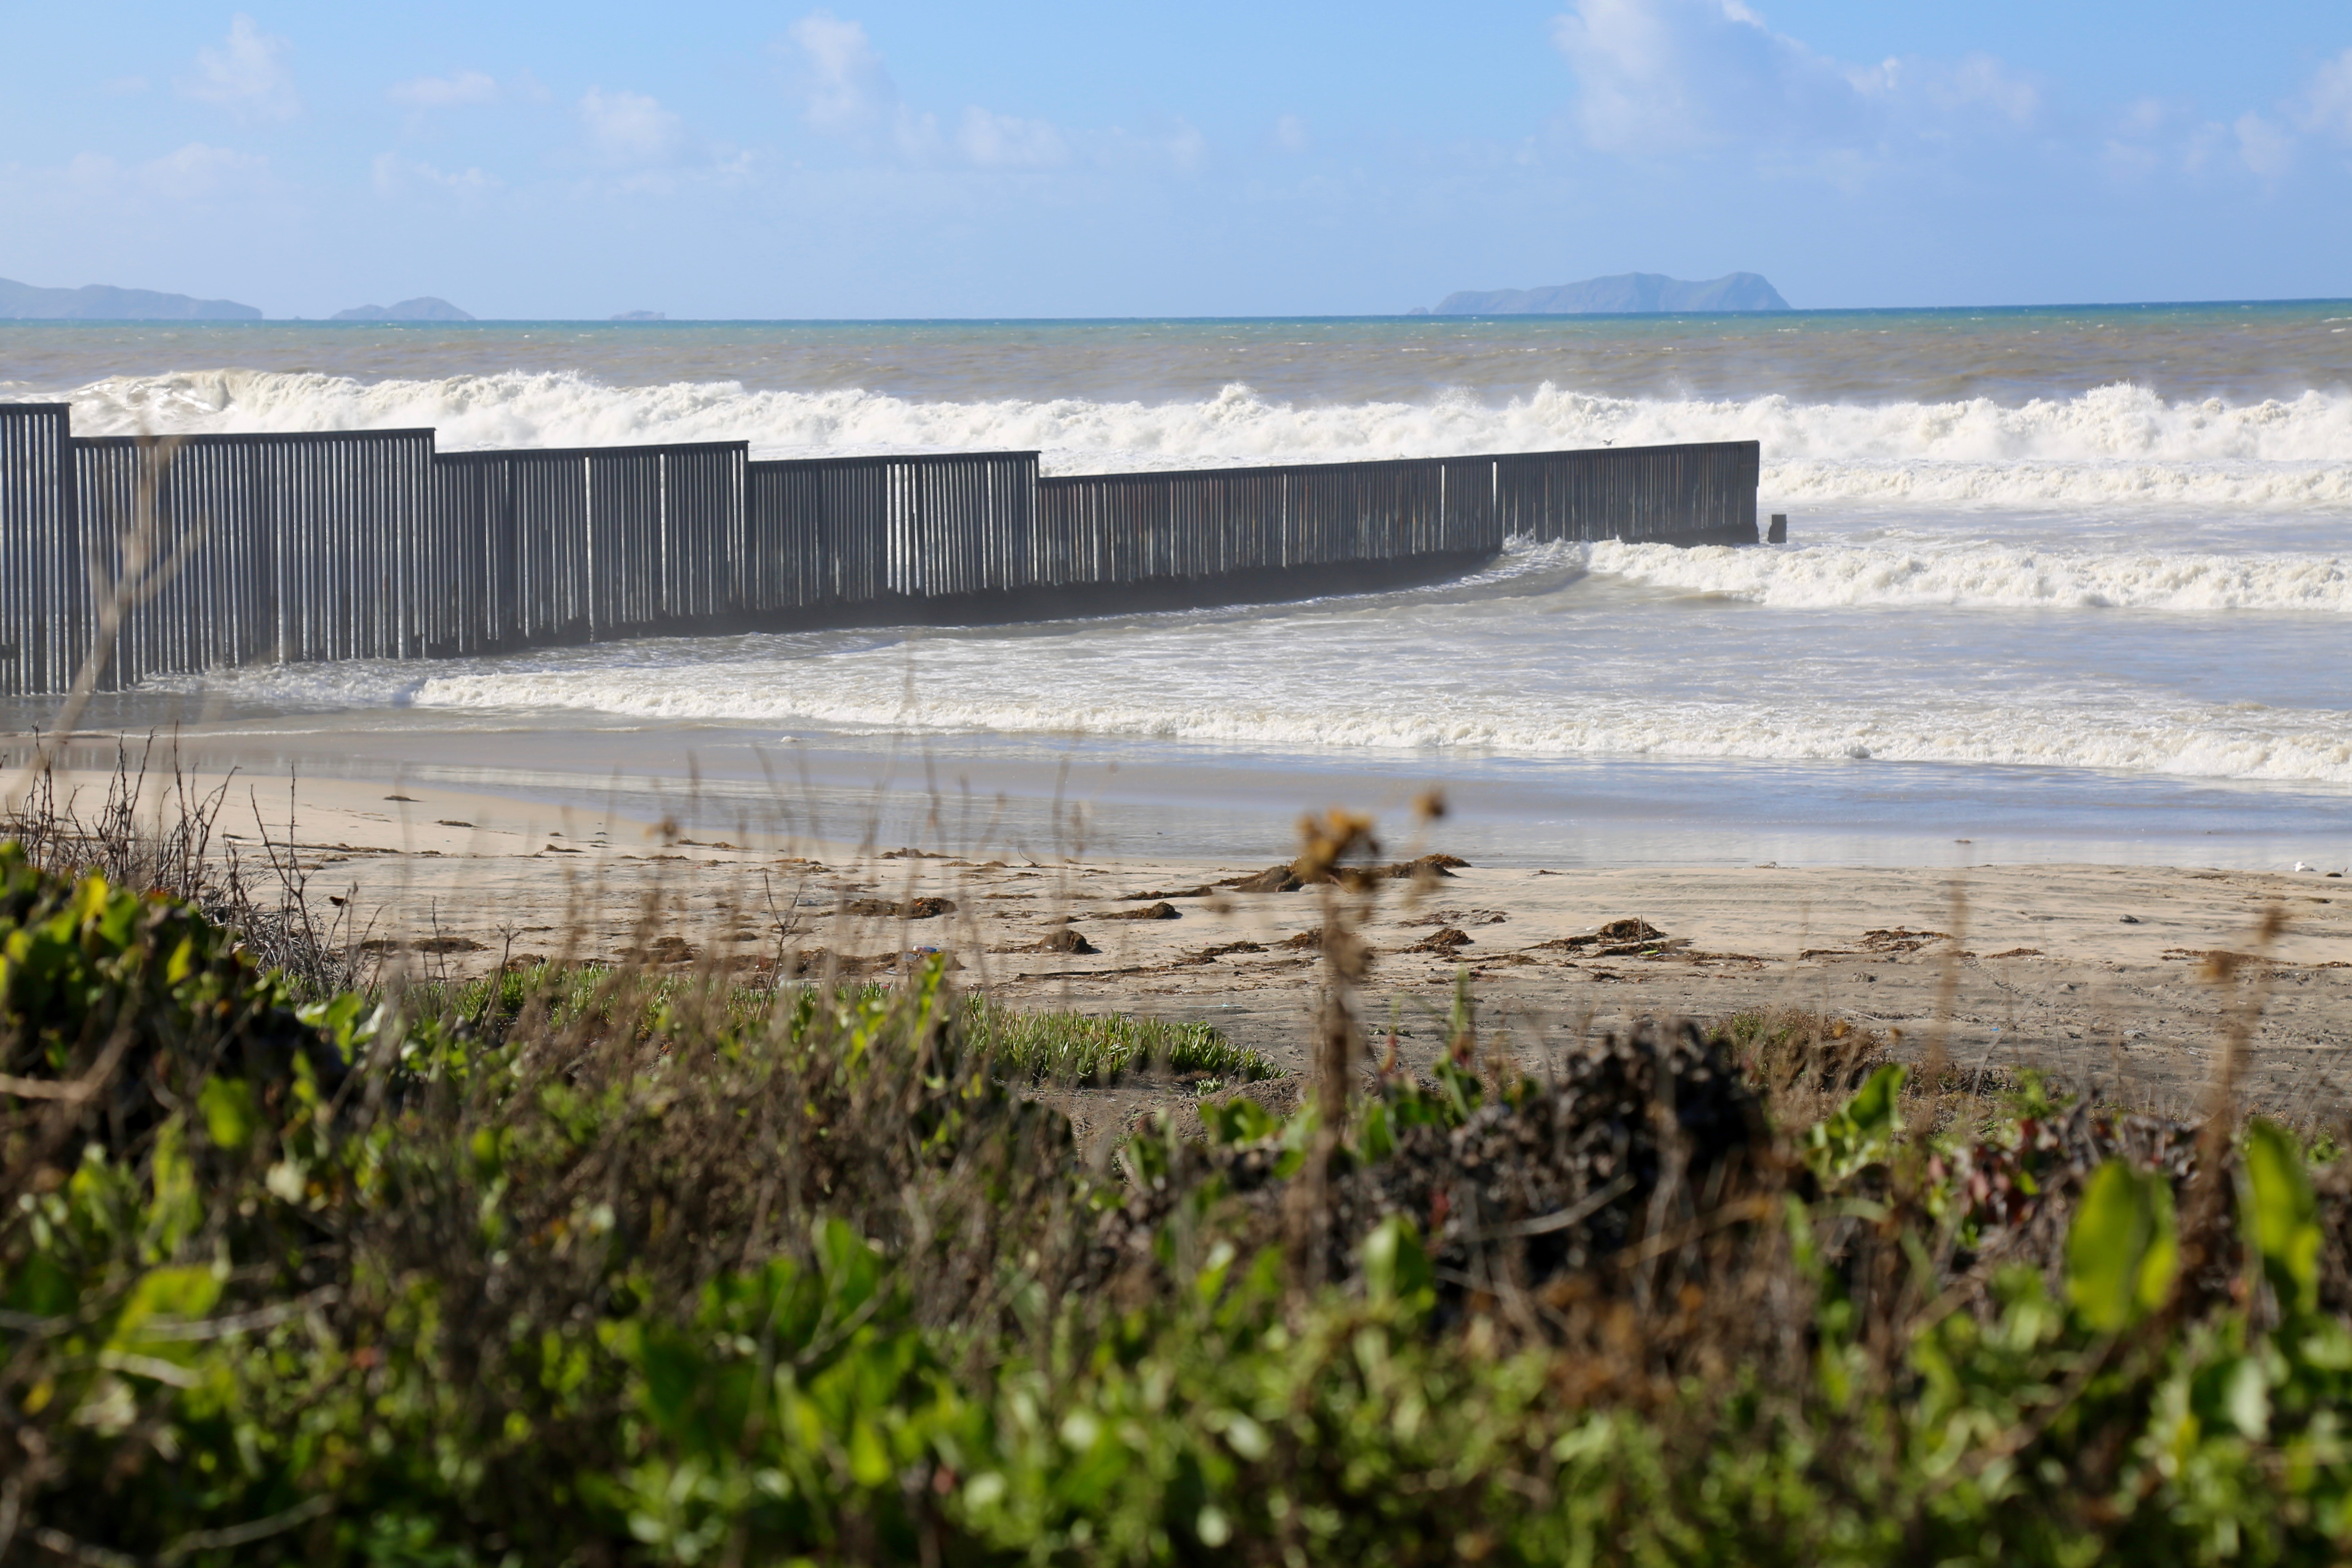 Waves break on the U.S.-Mexico border barrier at the edge of the Pacific Ocean. (R. Taylor/VOA)